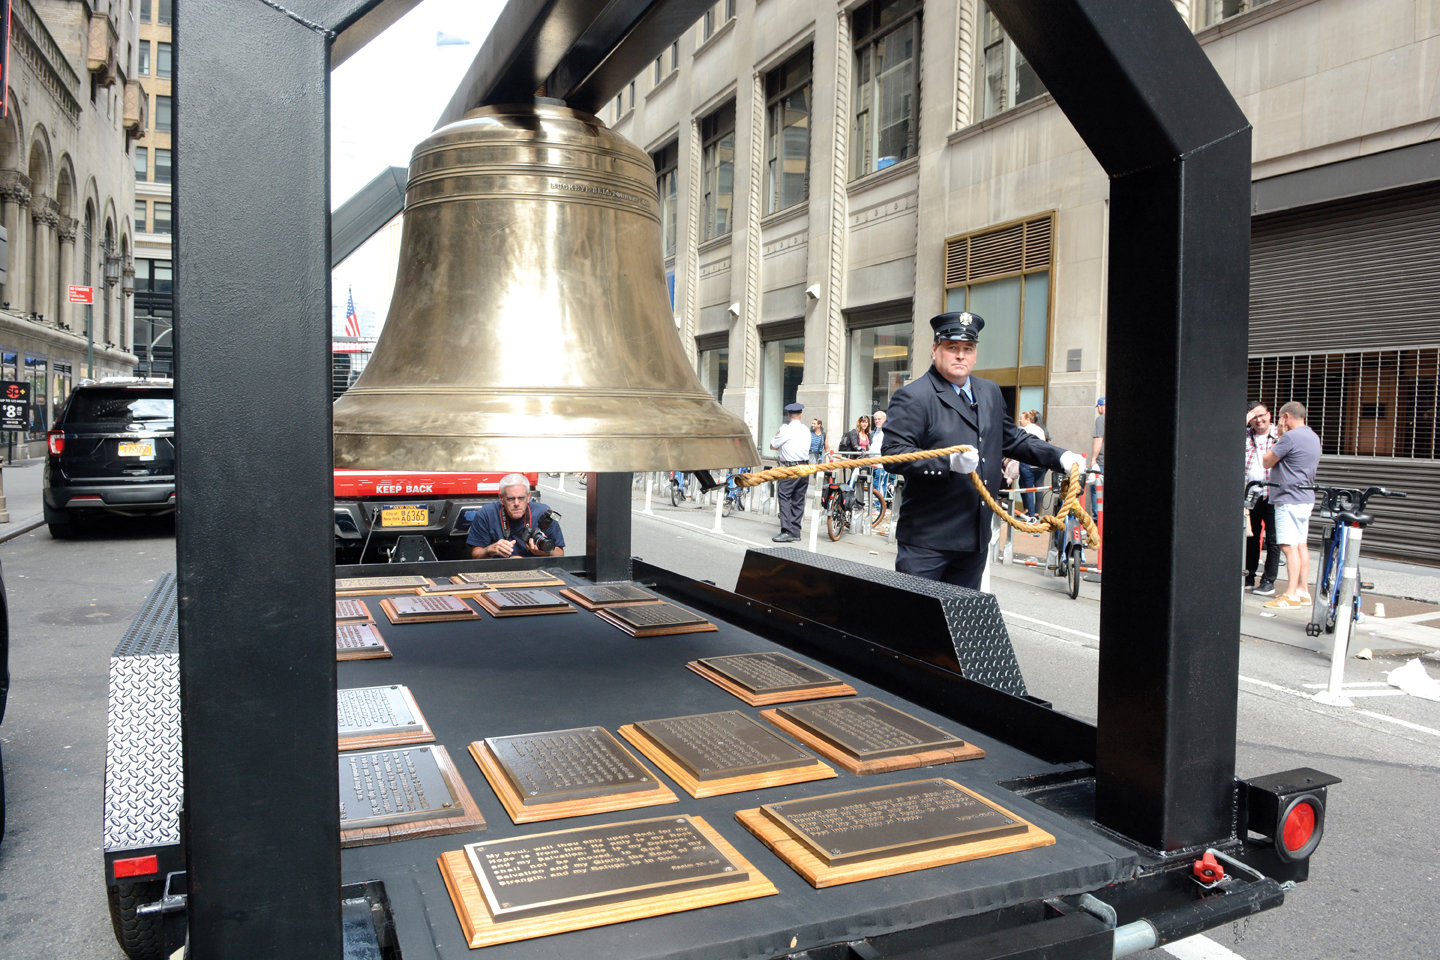 The Bell of Remembrance tolled during the annual Father Mychal Judge O.F.M. 9/11 Walk of Remembrance in Manhattan Sept. 8, retracing the footsteps of the FDNY chaplain who died while responding at the World Trade Center on Sept. 11, 2001.